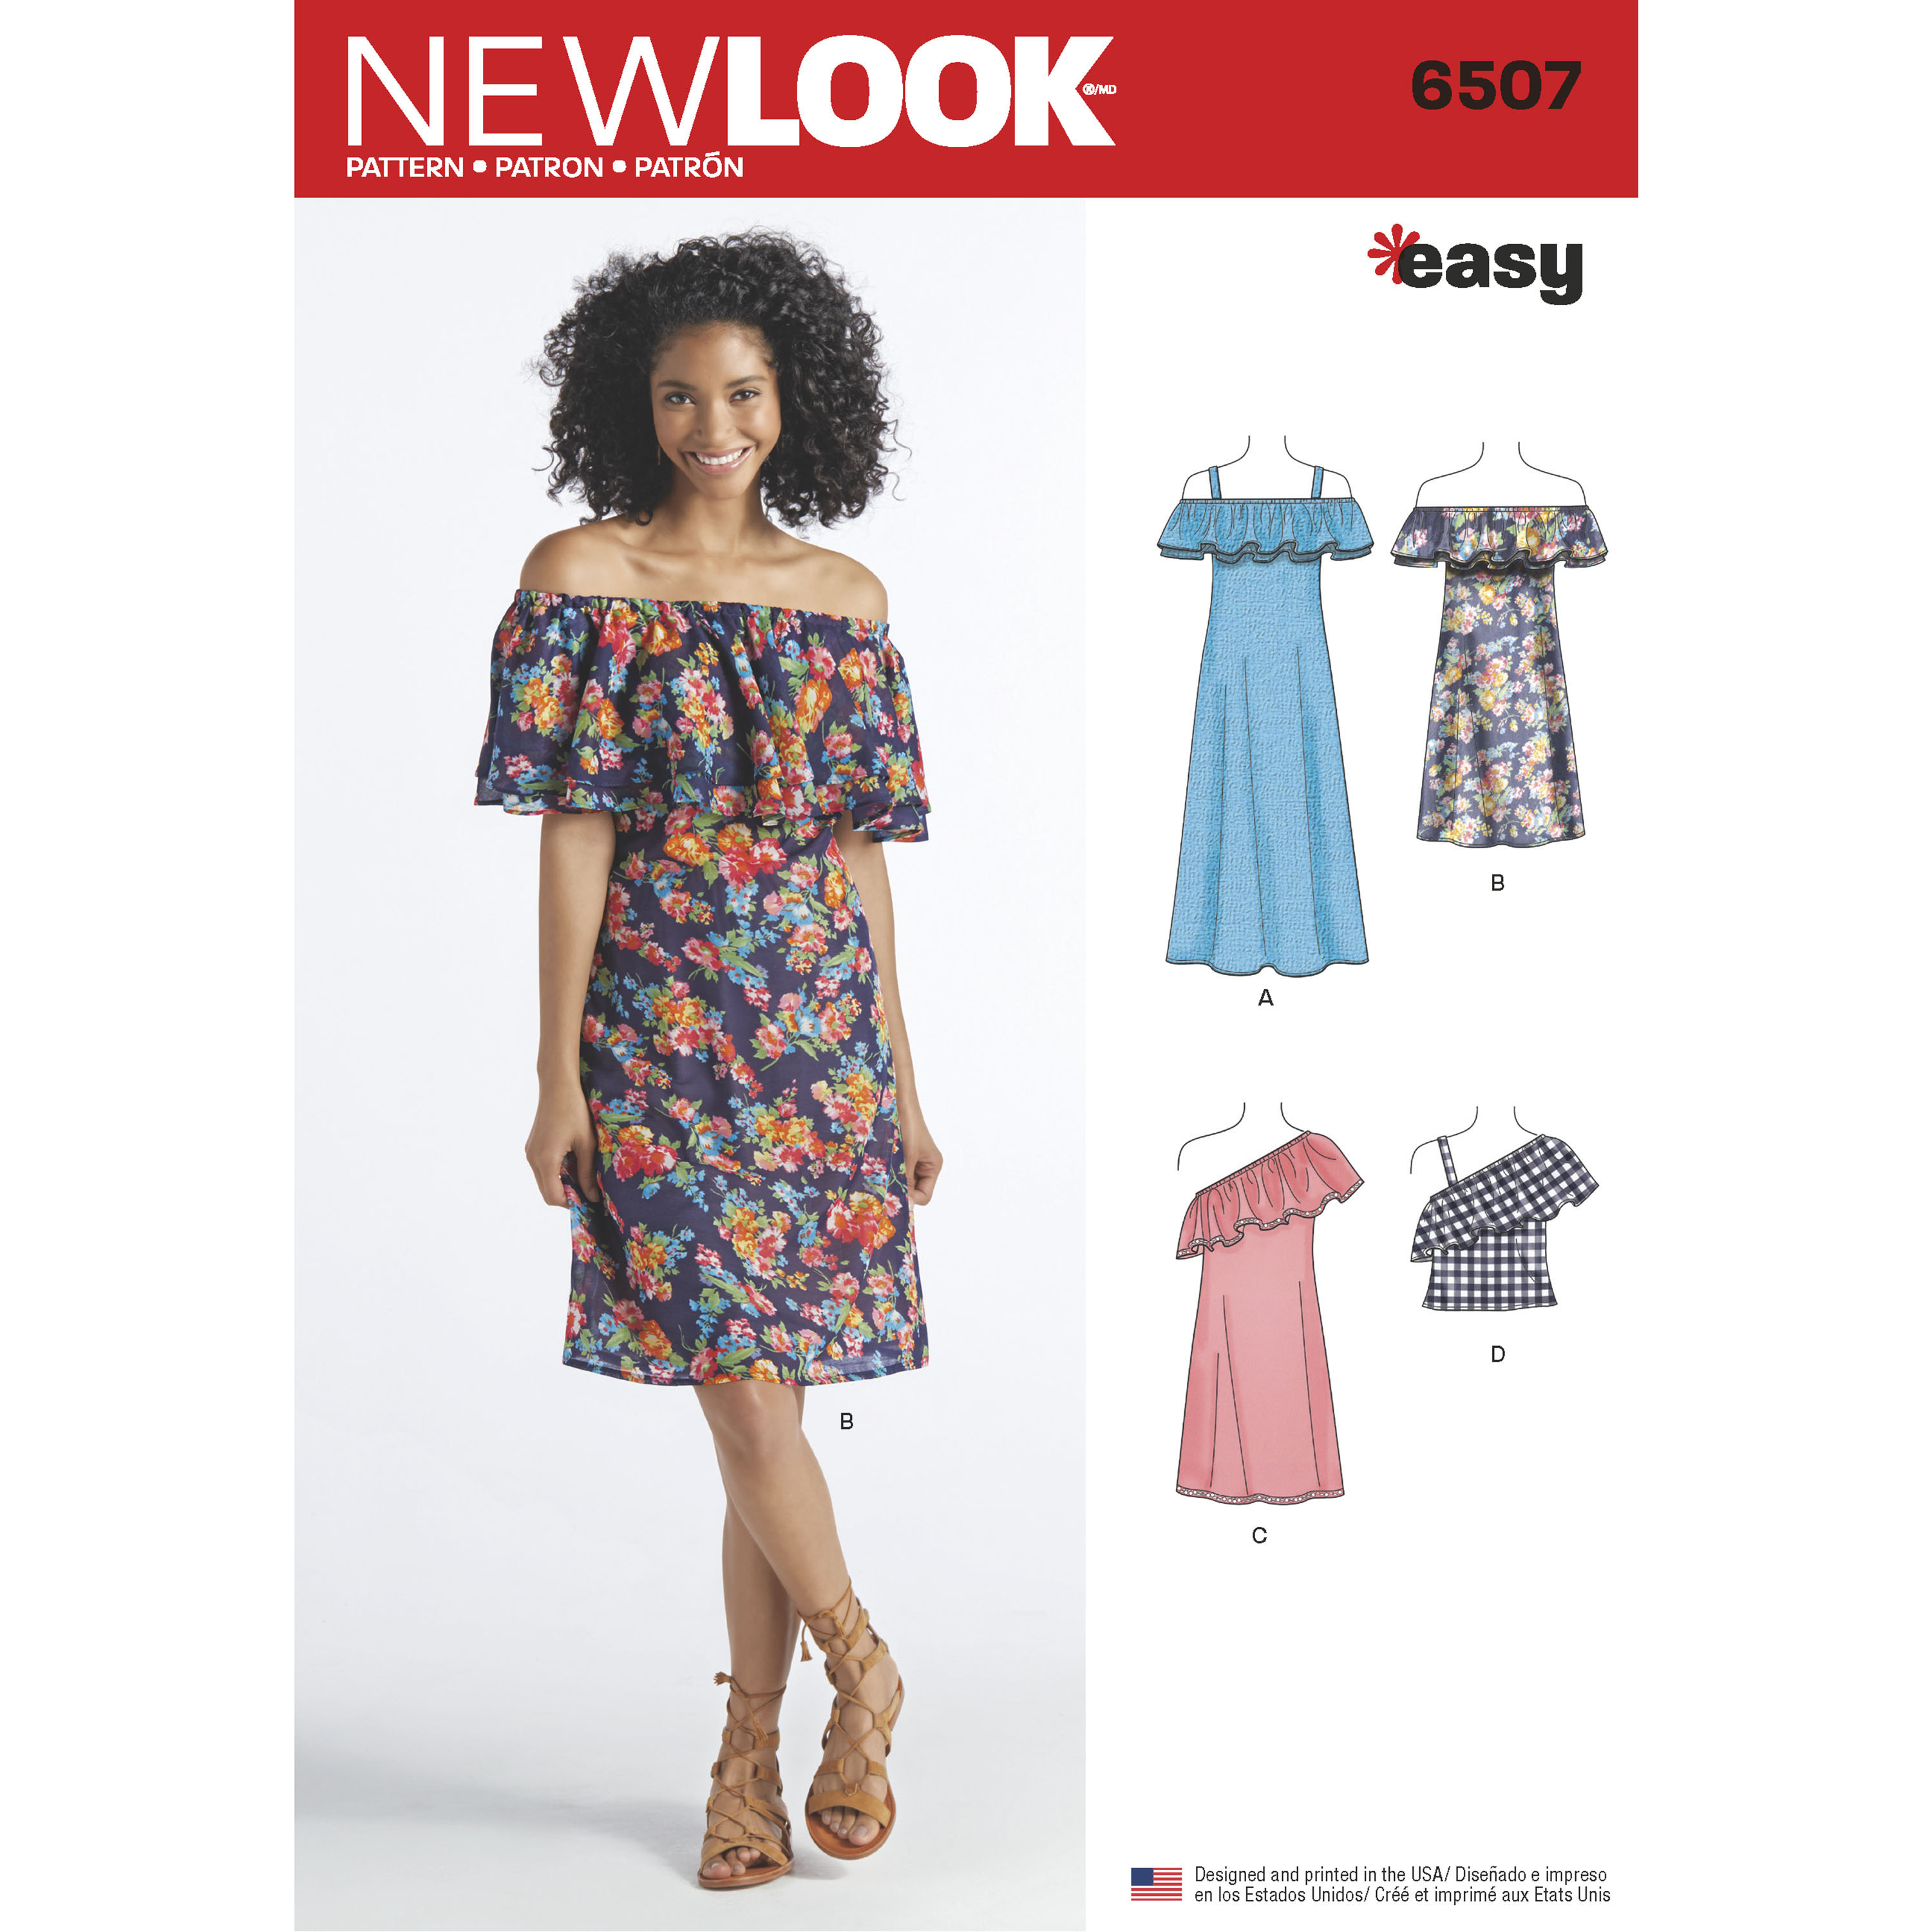 New Look 6507 Misses\' Dresses and Top